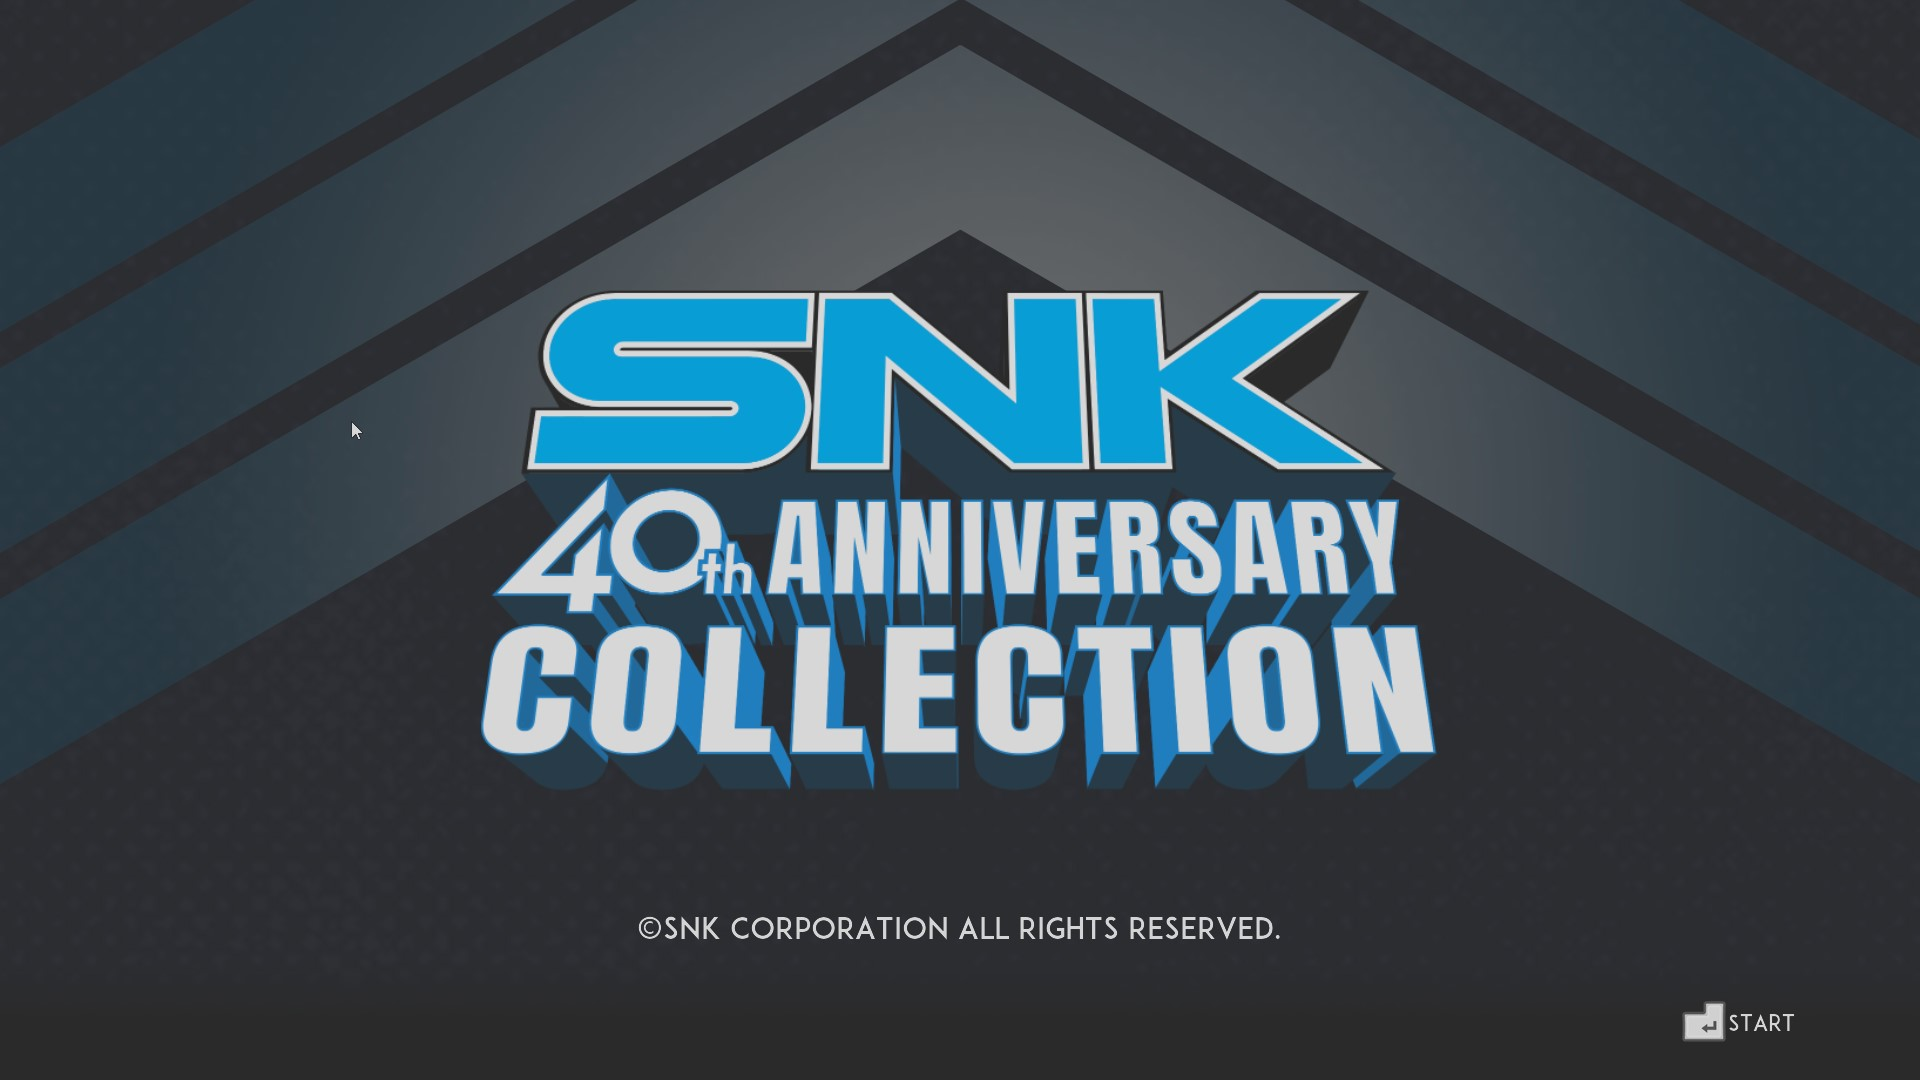 AkinNahtanoj: SNK 40th Anniversary Collection: Beast Busters (PC) 59,060 points on 2020-08-23 15:11:13